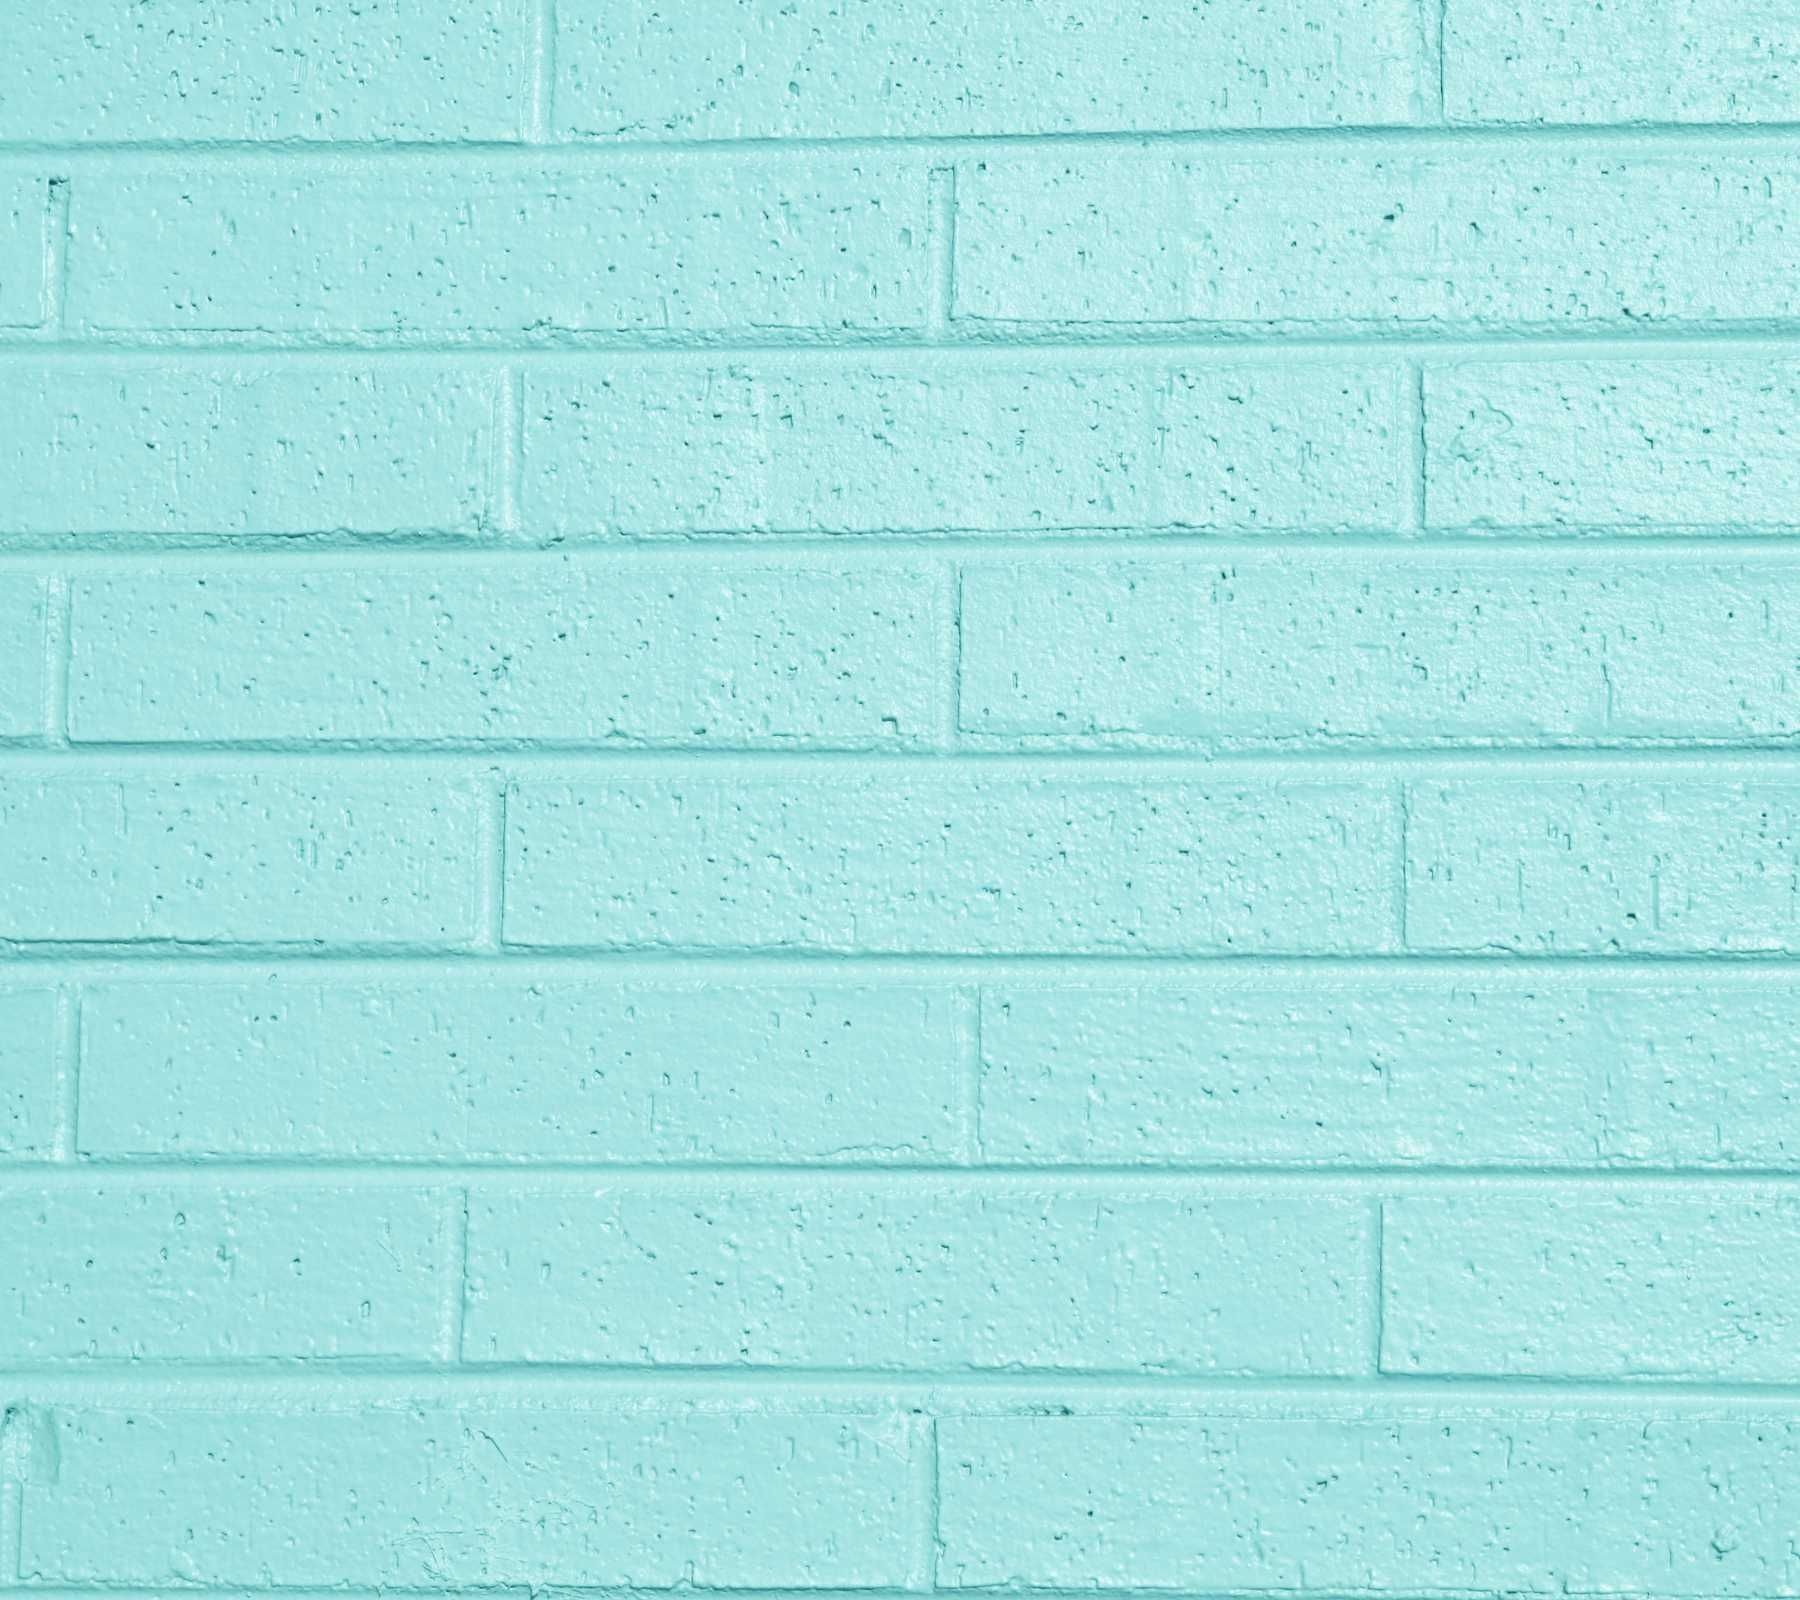 Blue Pastel Tumblr Wallpapers Top Free Blue Pastel Tumblr Backgrounds Wallpaperaccess